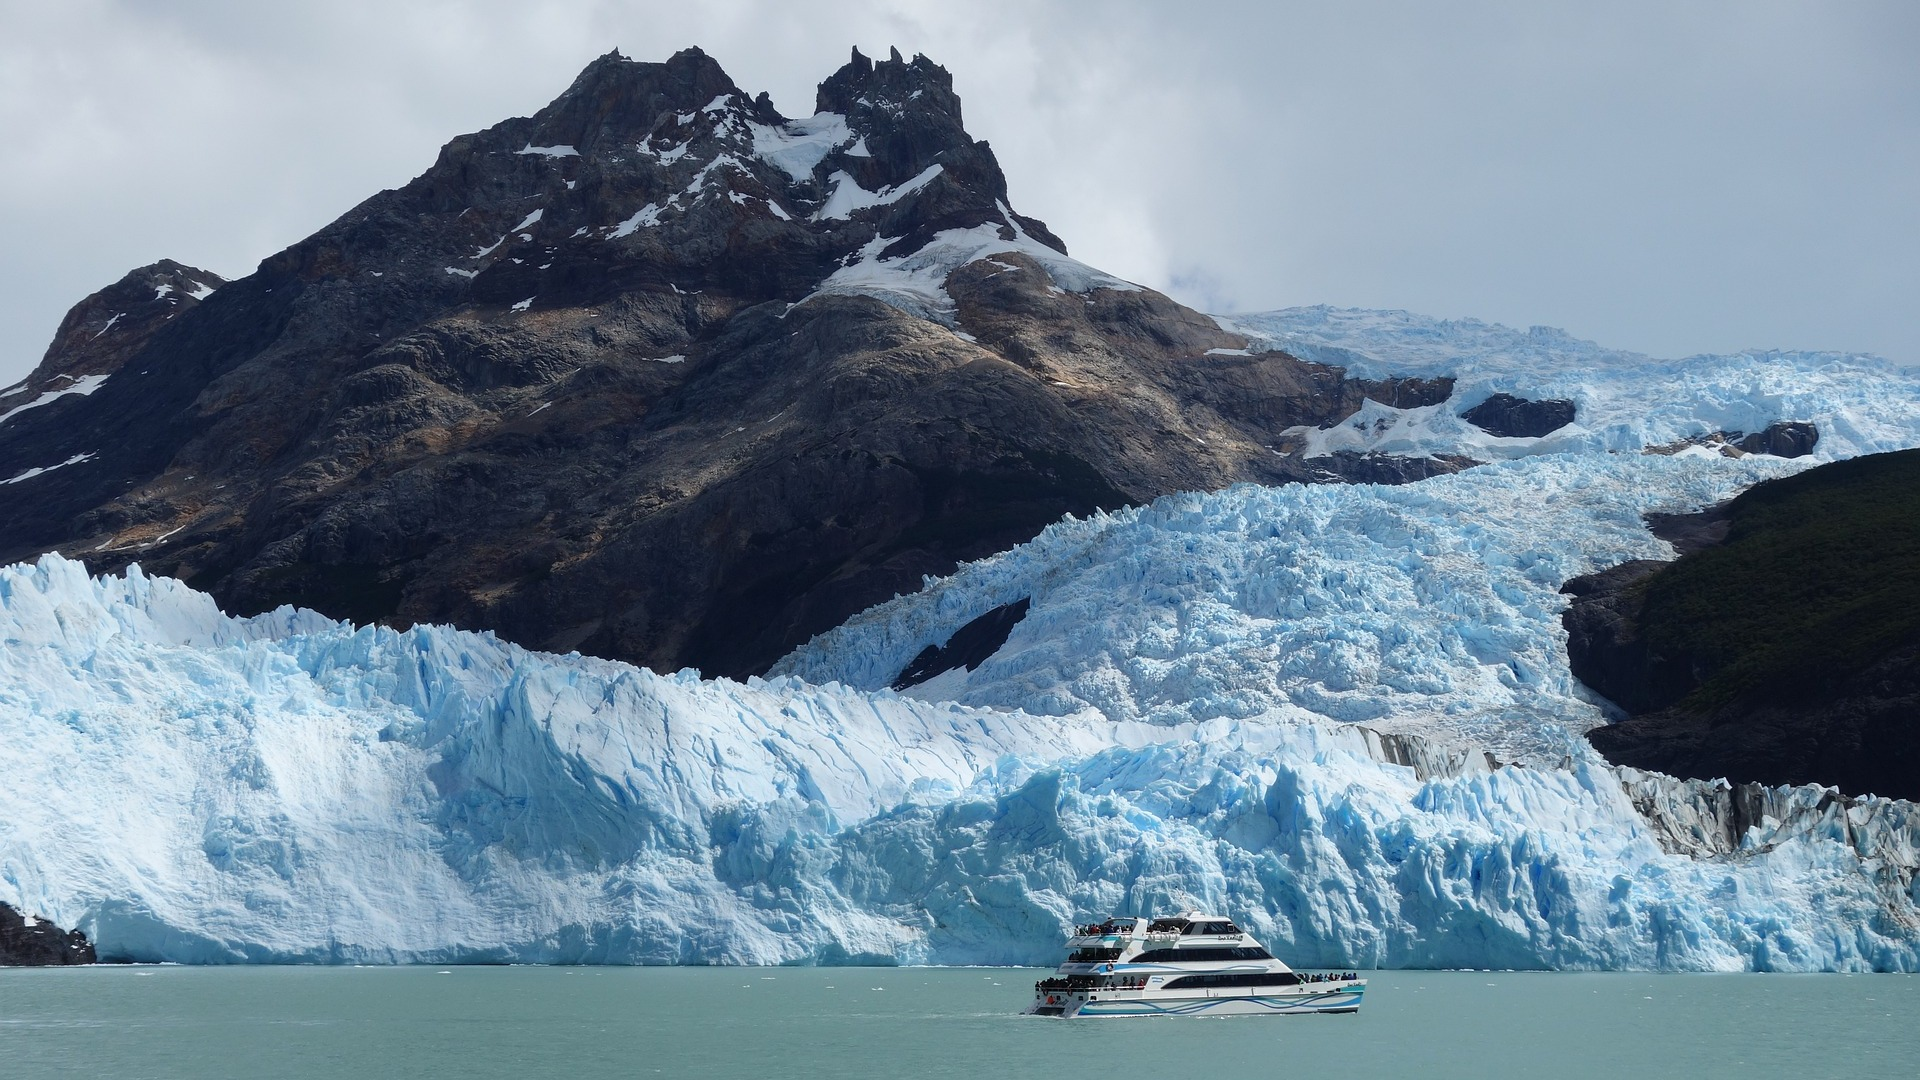 Boat tour on a glacier lake, Patagonia